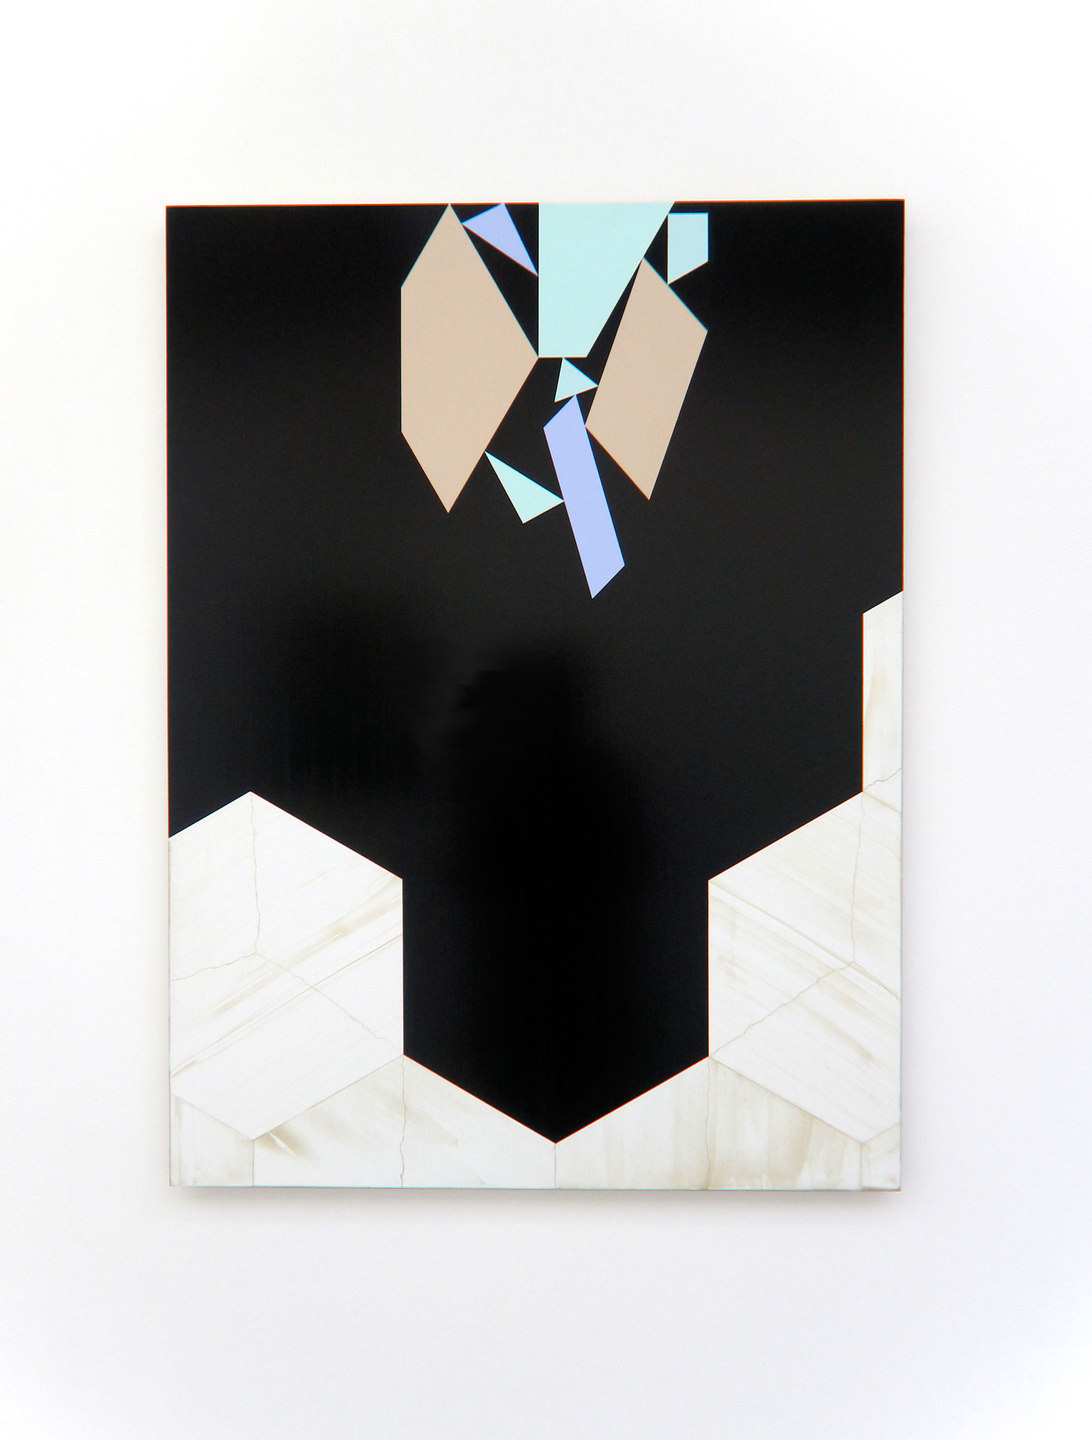 Andy Jackson, Set 5 (Magnetise), 2010, Acrylic and Metallic Acrylic on Board, (h.1155mm x w.835mm), Cell Project Space